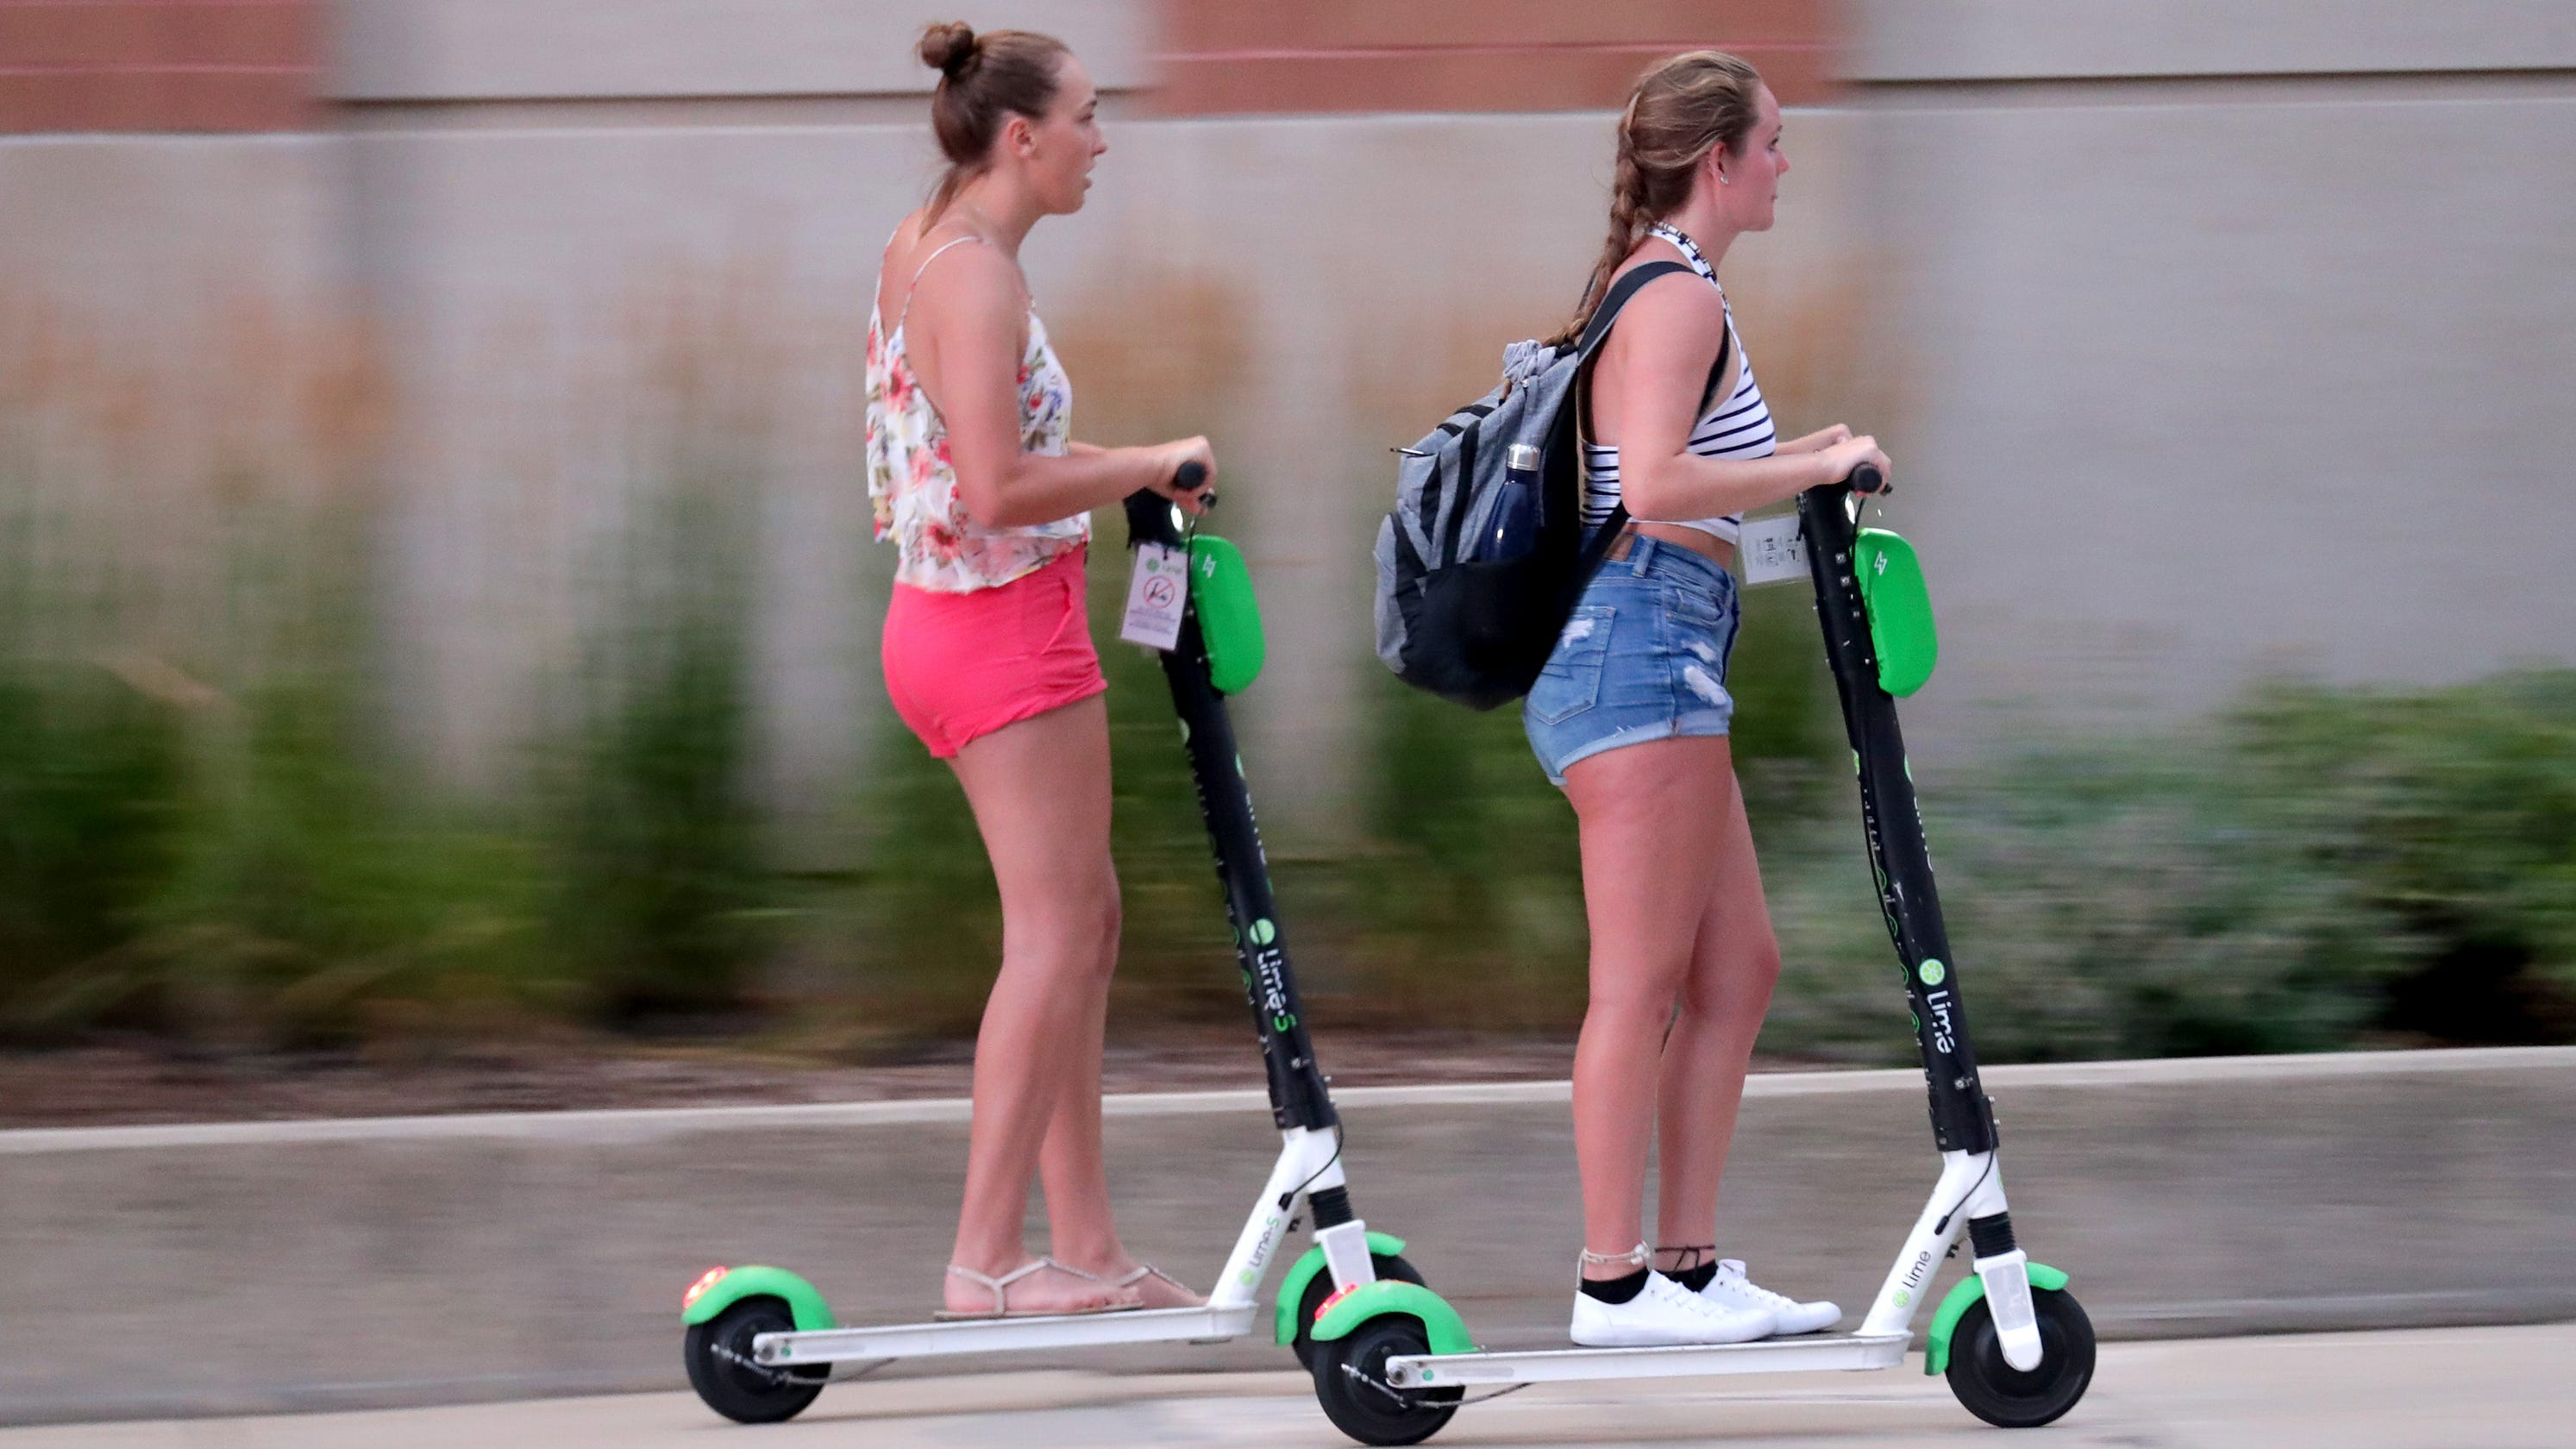 Bird and Spin e-scooters expected to get approval in Milwaukee